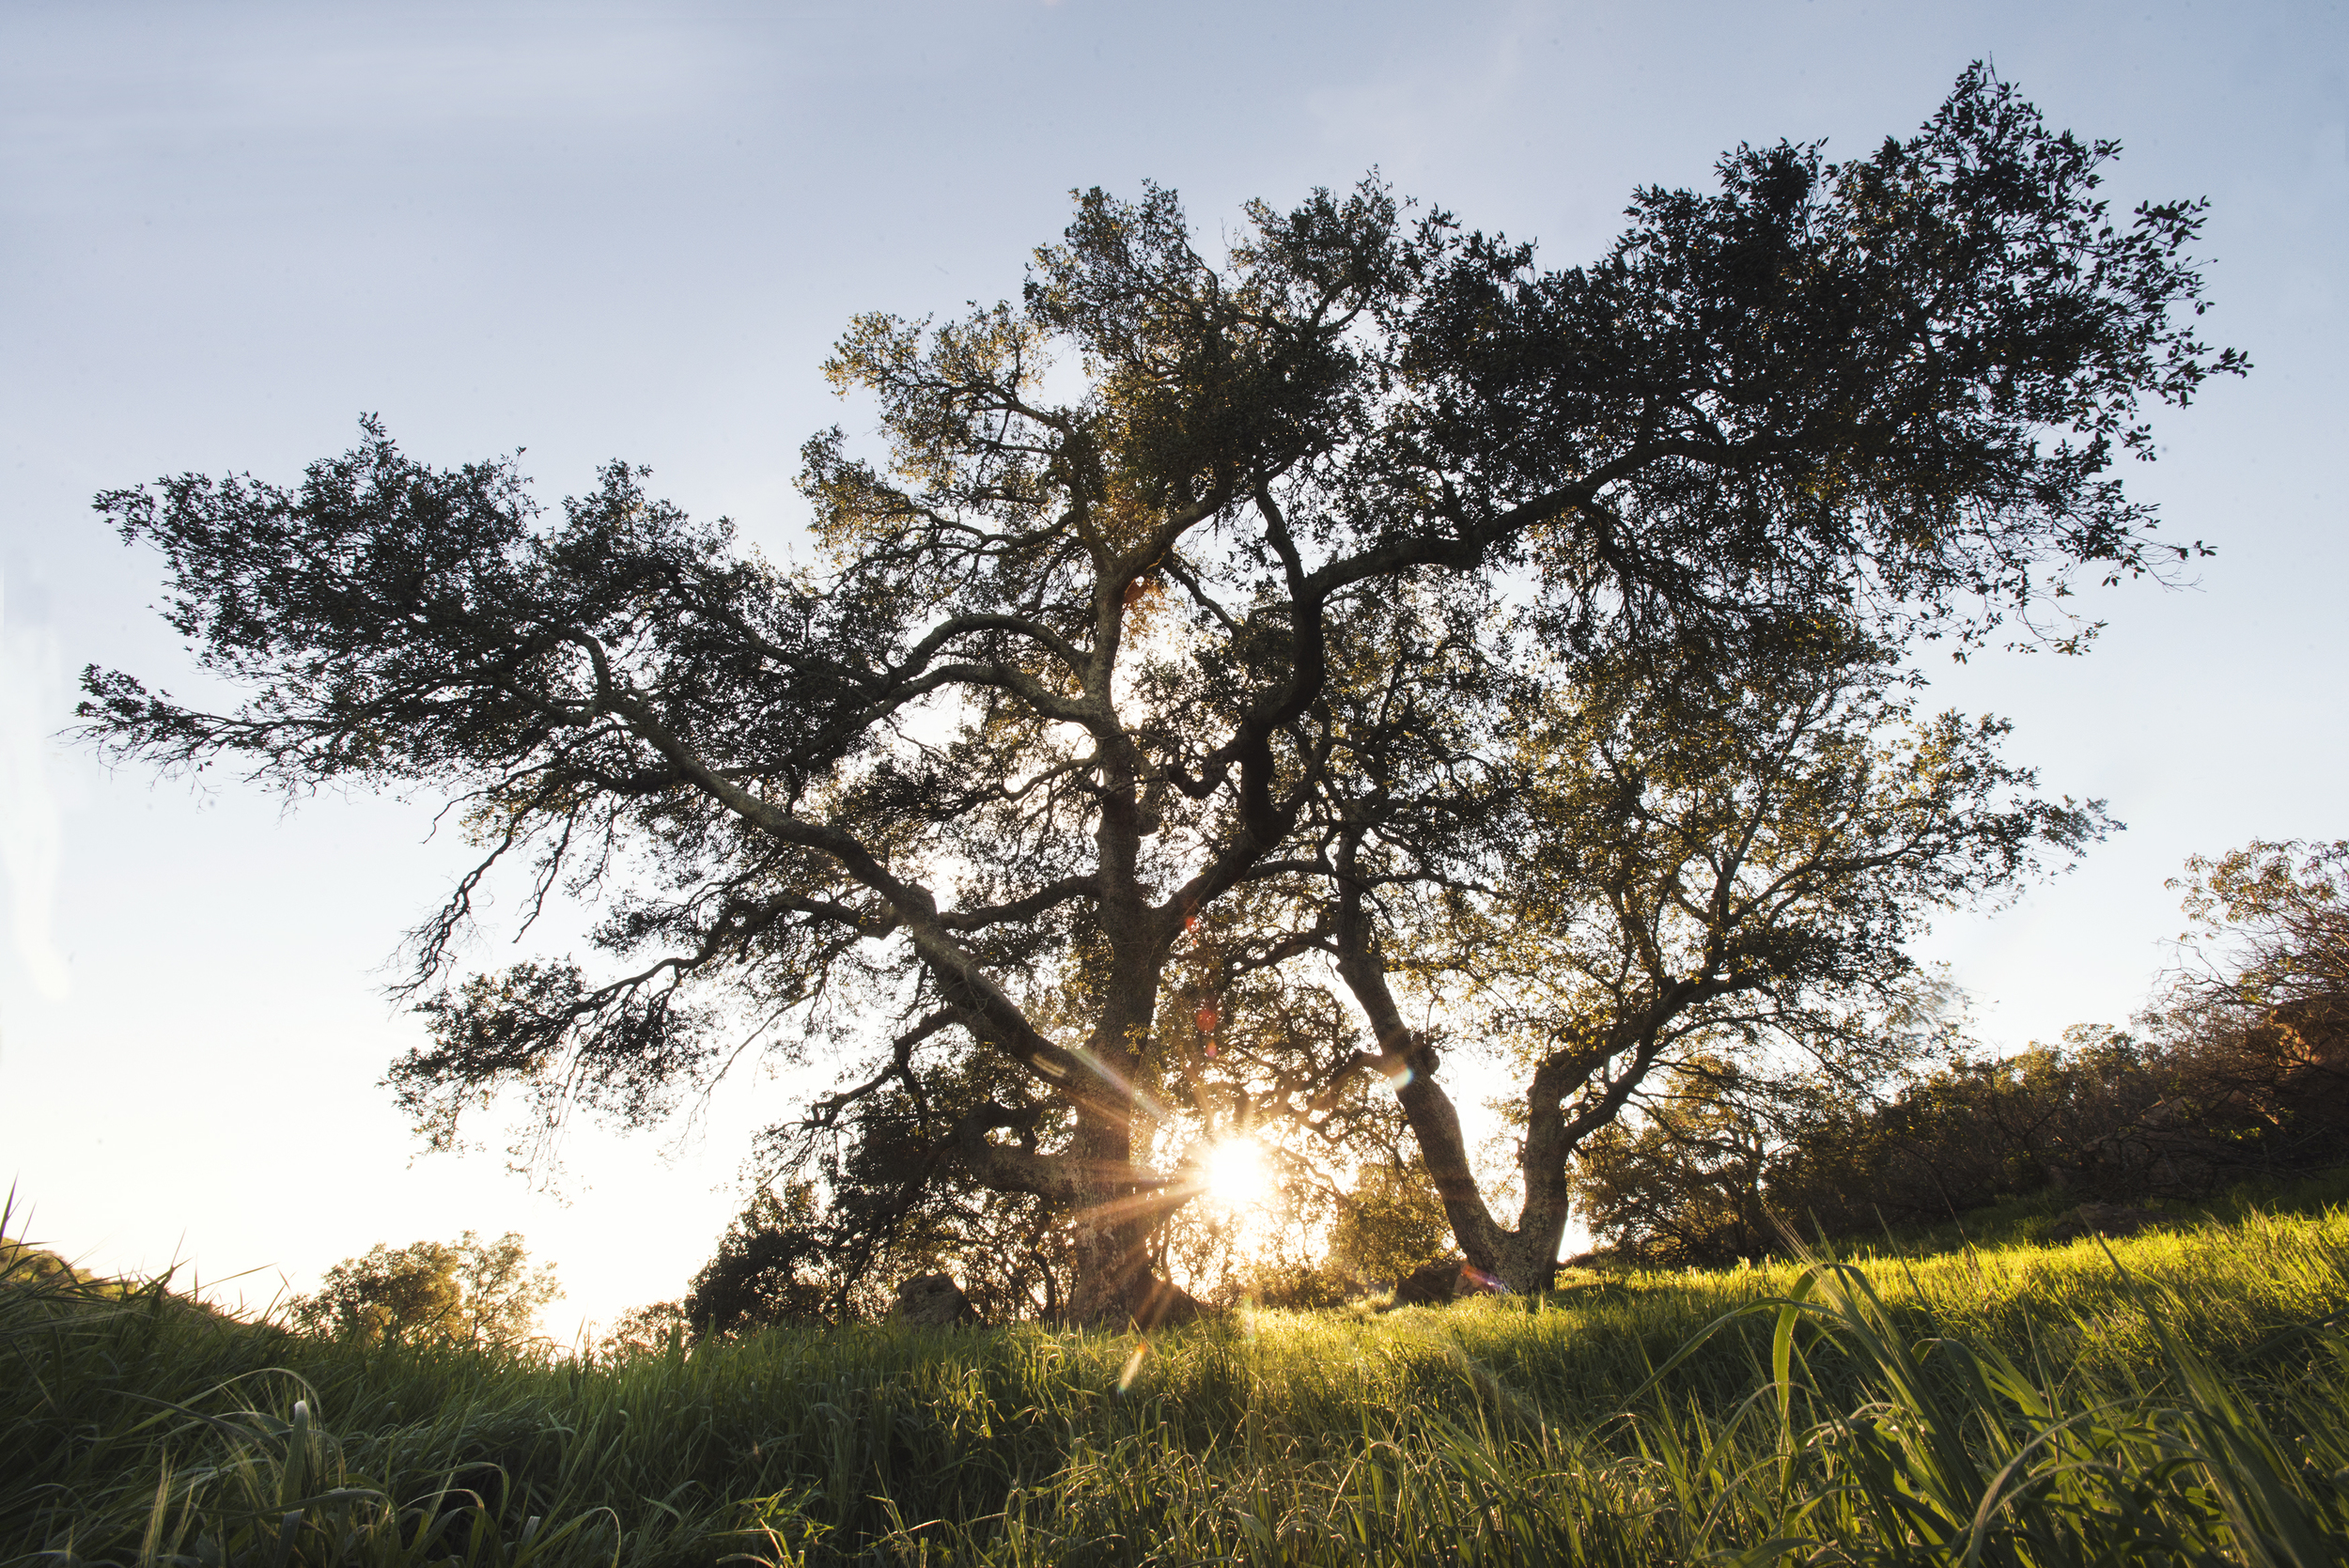 Oak trees in Charmlee park in the Santa Monica Mountains.